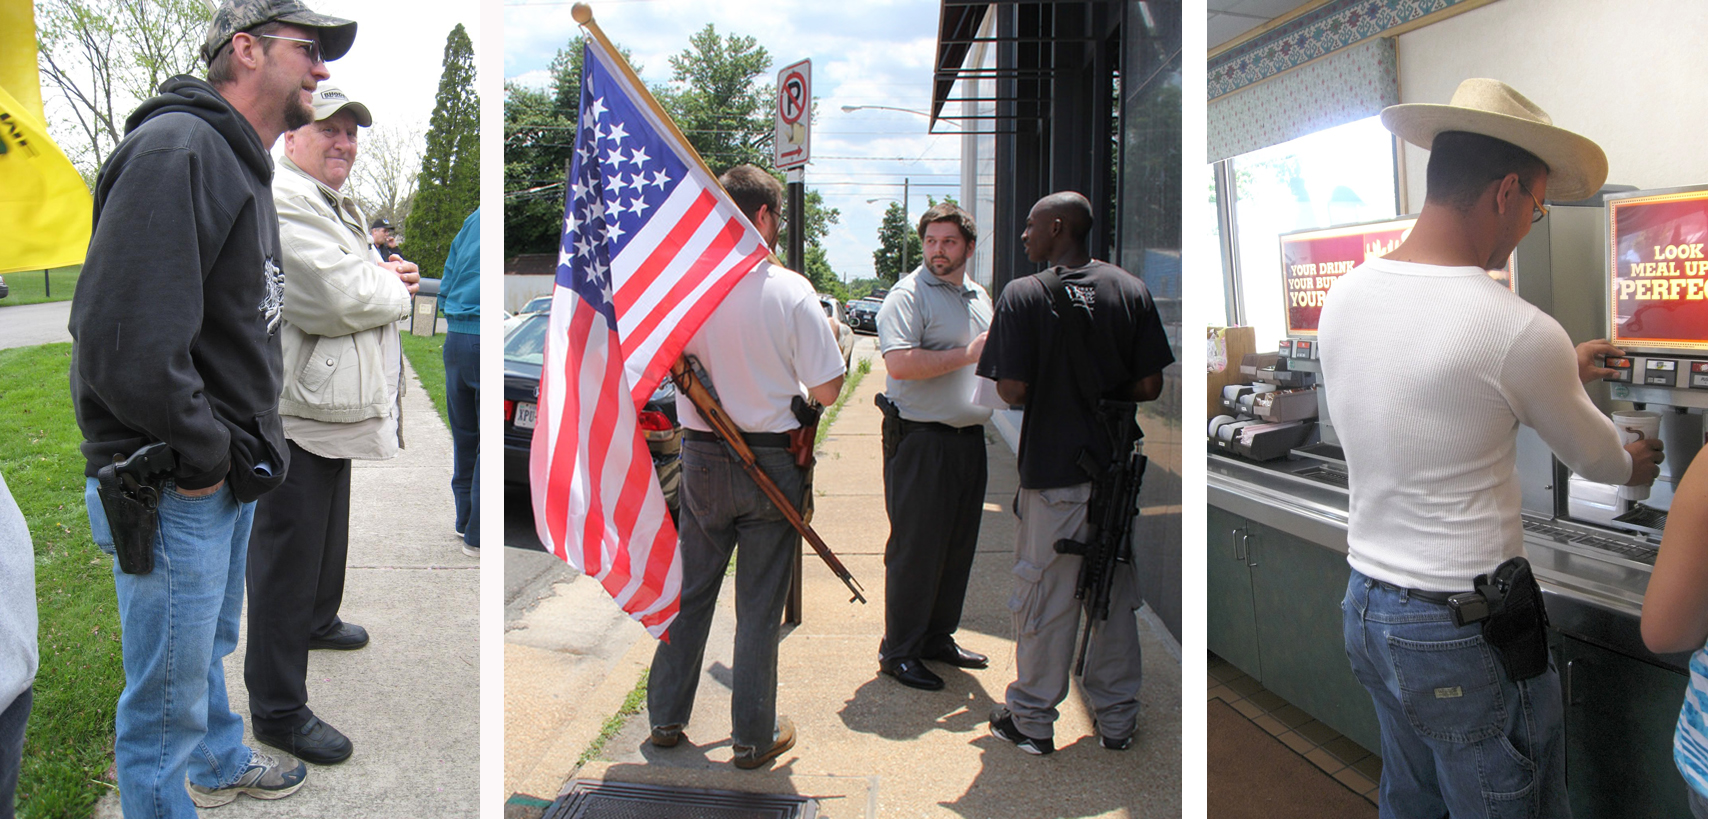 Asking to see 'open carry' permits makes everyone safer